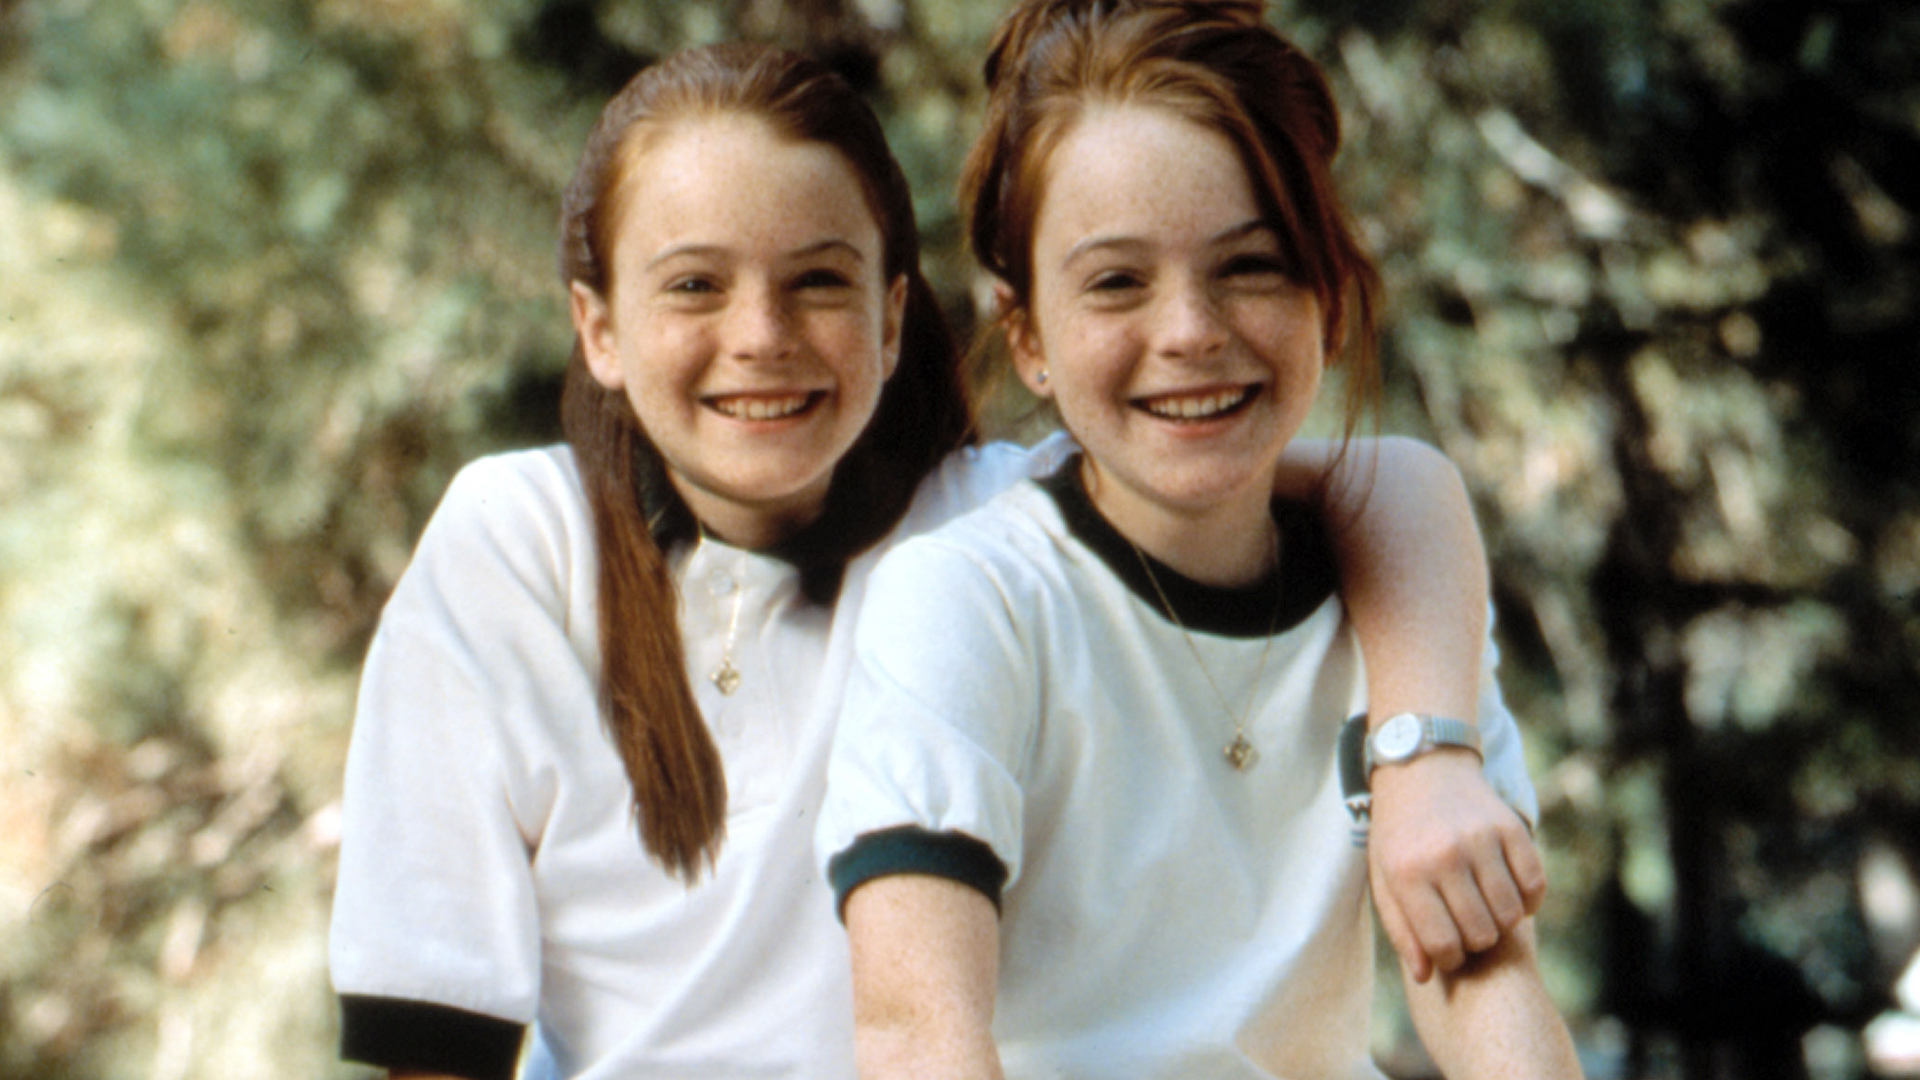 The Parent Trap Turns 20 Watch 2 Cast Members Share Behind The Scenes Stories